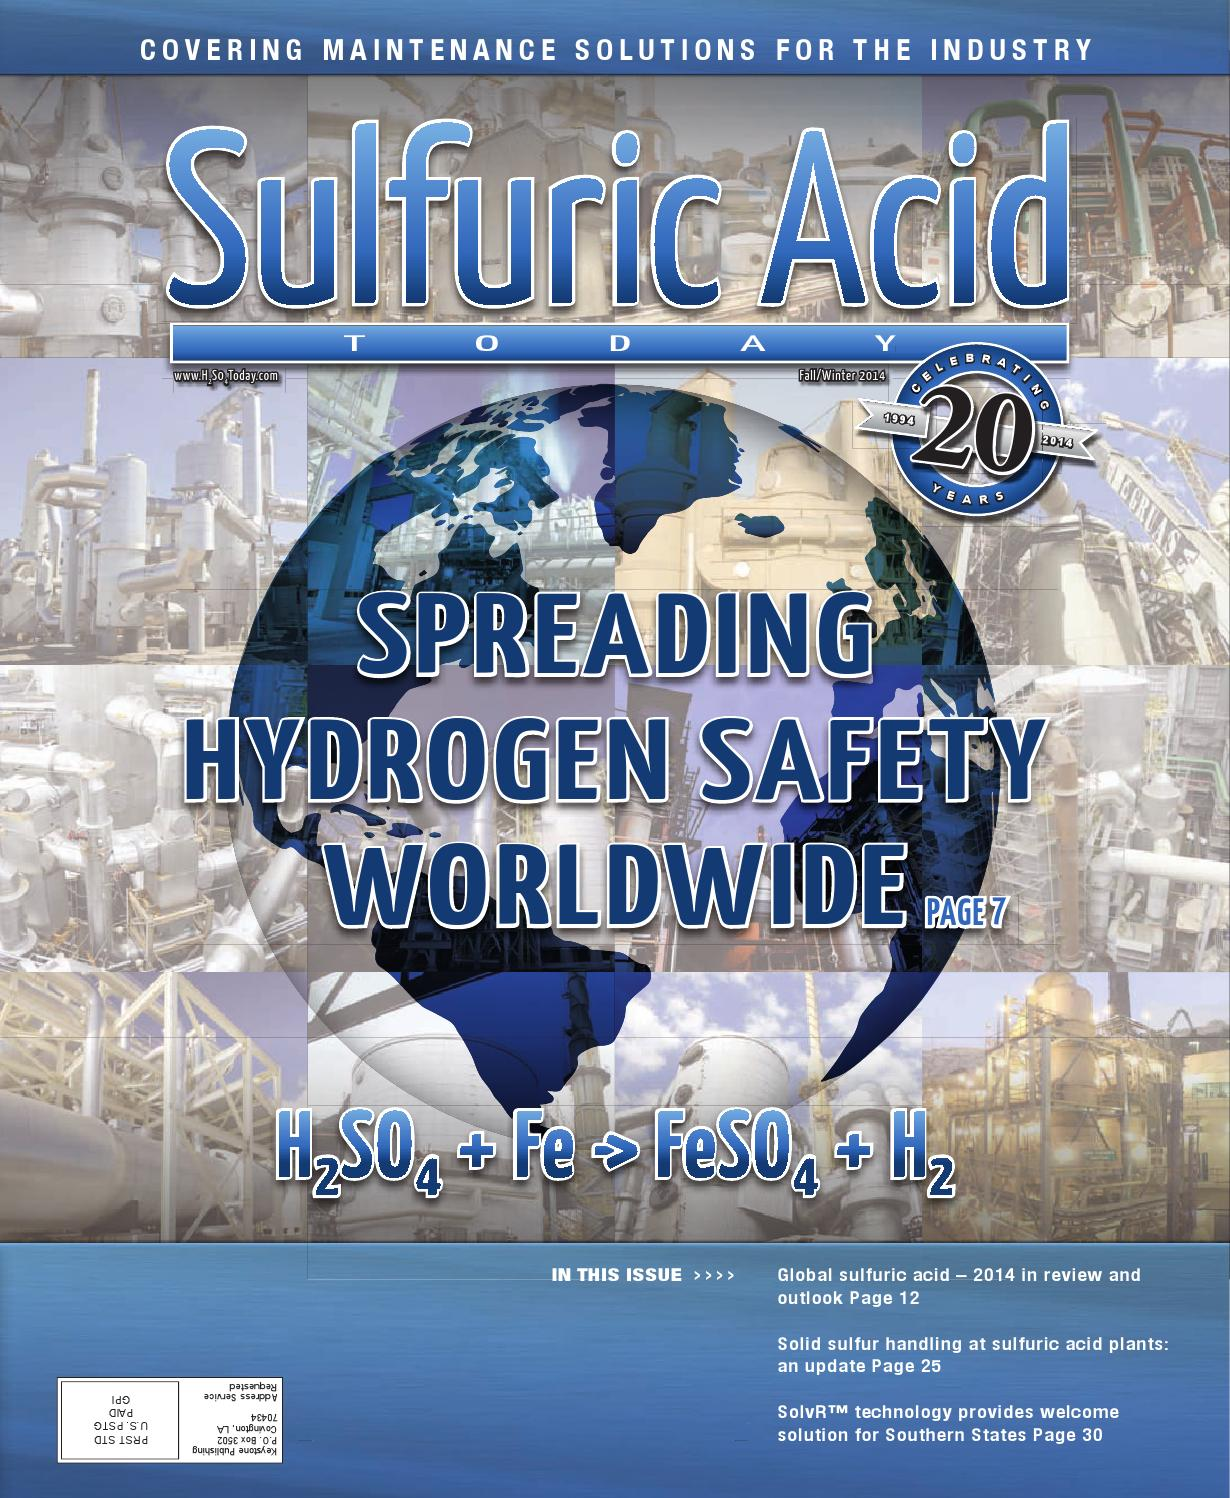 an overview of the sulfuric acid industry in ontario Sulfuric acid is used in almost all industrial sectors typical areas of application are in the production of fertilizers and pigments as well as metal ore leaching in addition, sulfuric acid is used extensively in the chemical industry, whether in fiber production, hydrofluoric acid production, chlorine drying or one of many other applications.